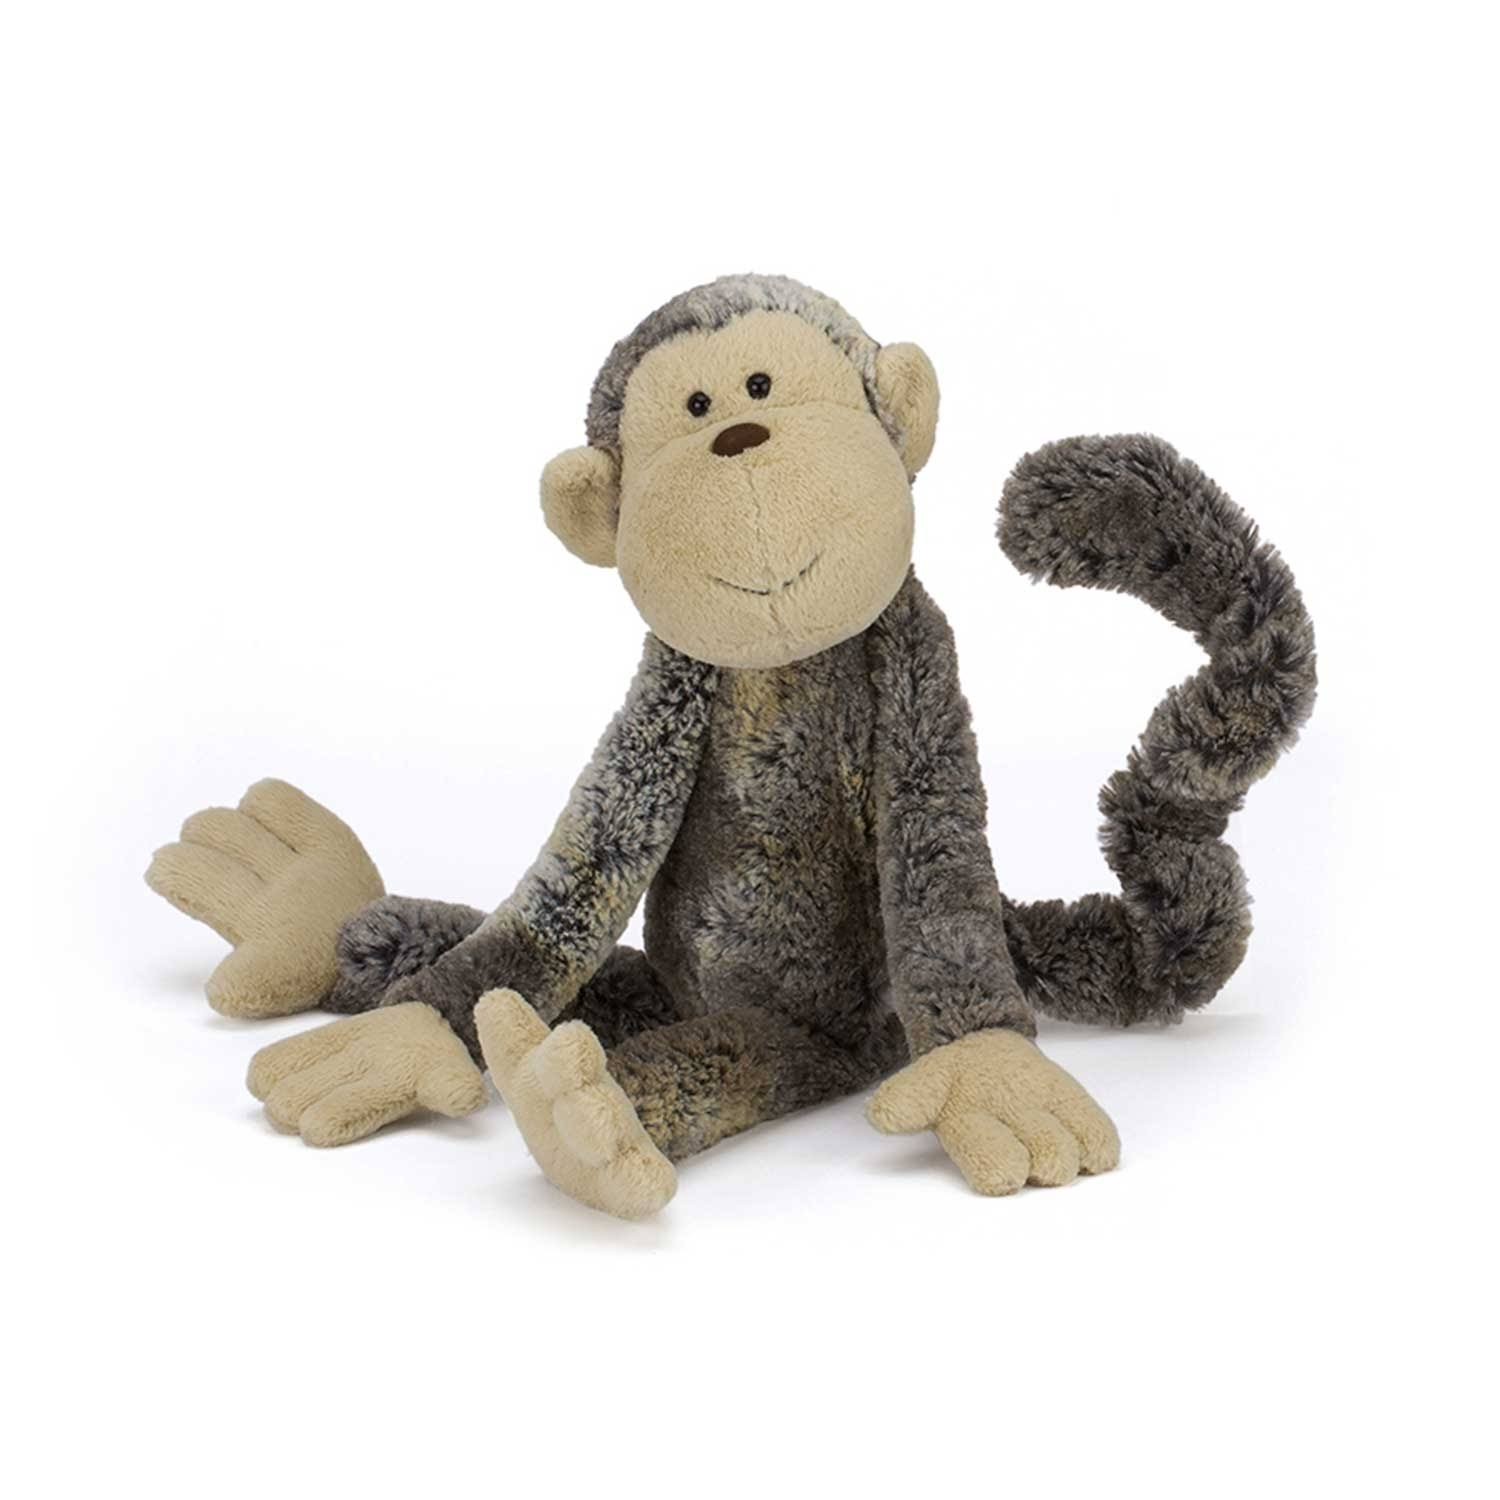 Jellycat Mattie Monkey Toy - Medium